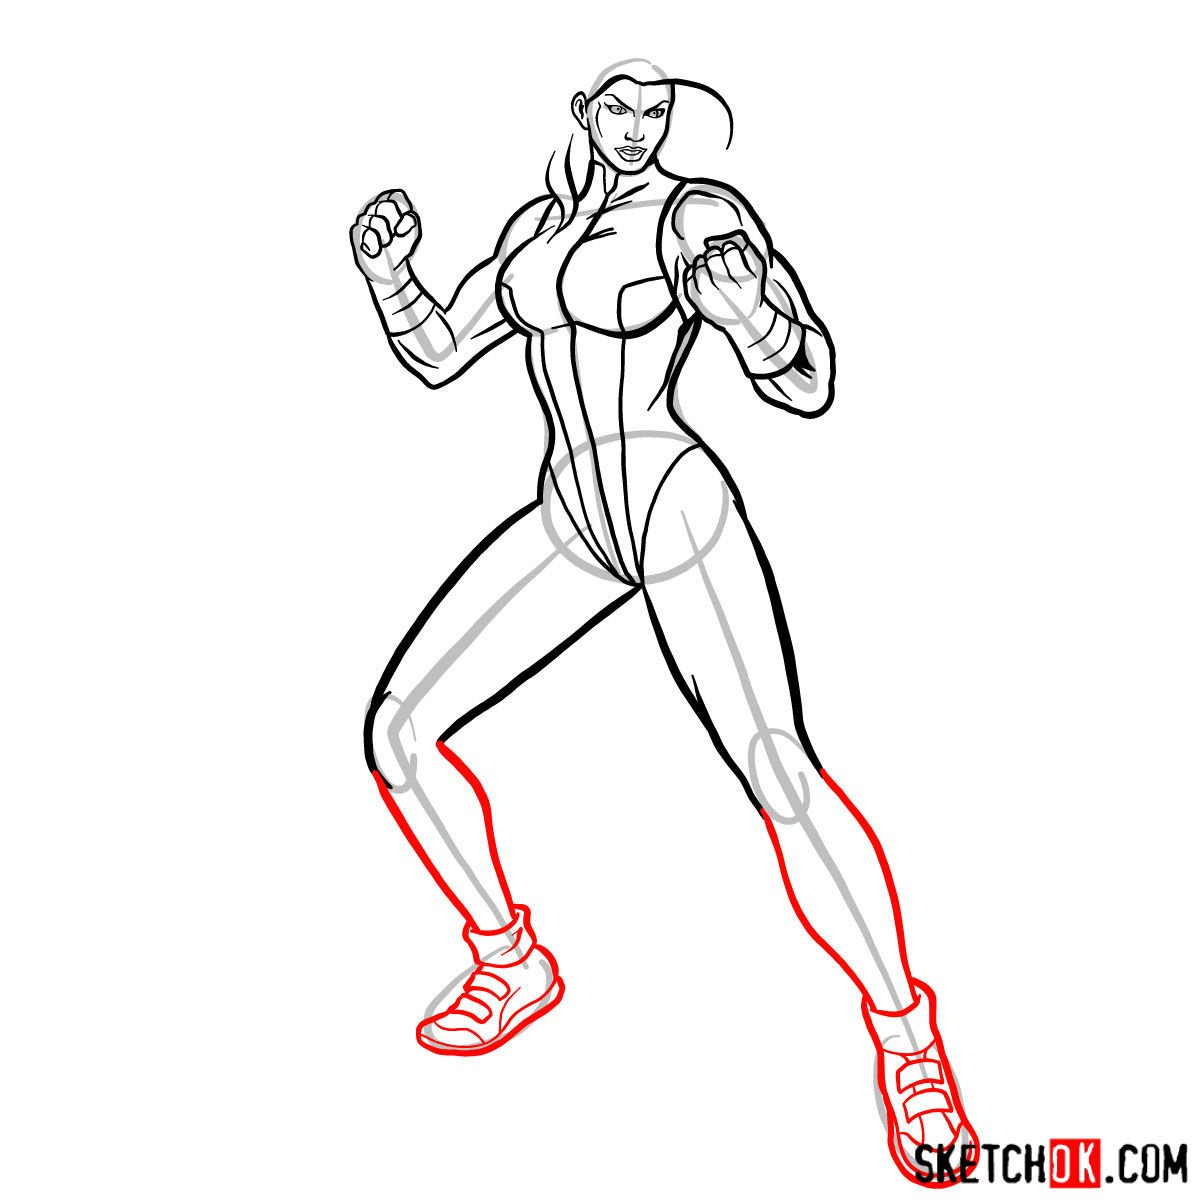 How to draw She-Hulk (Jennifer Walters) from Marvel - step 11